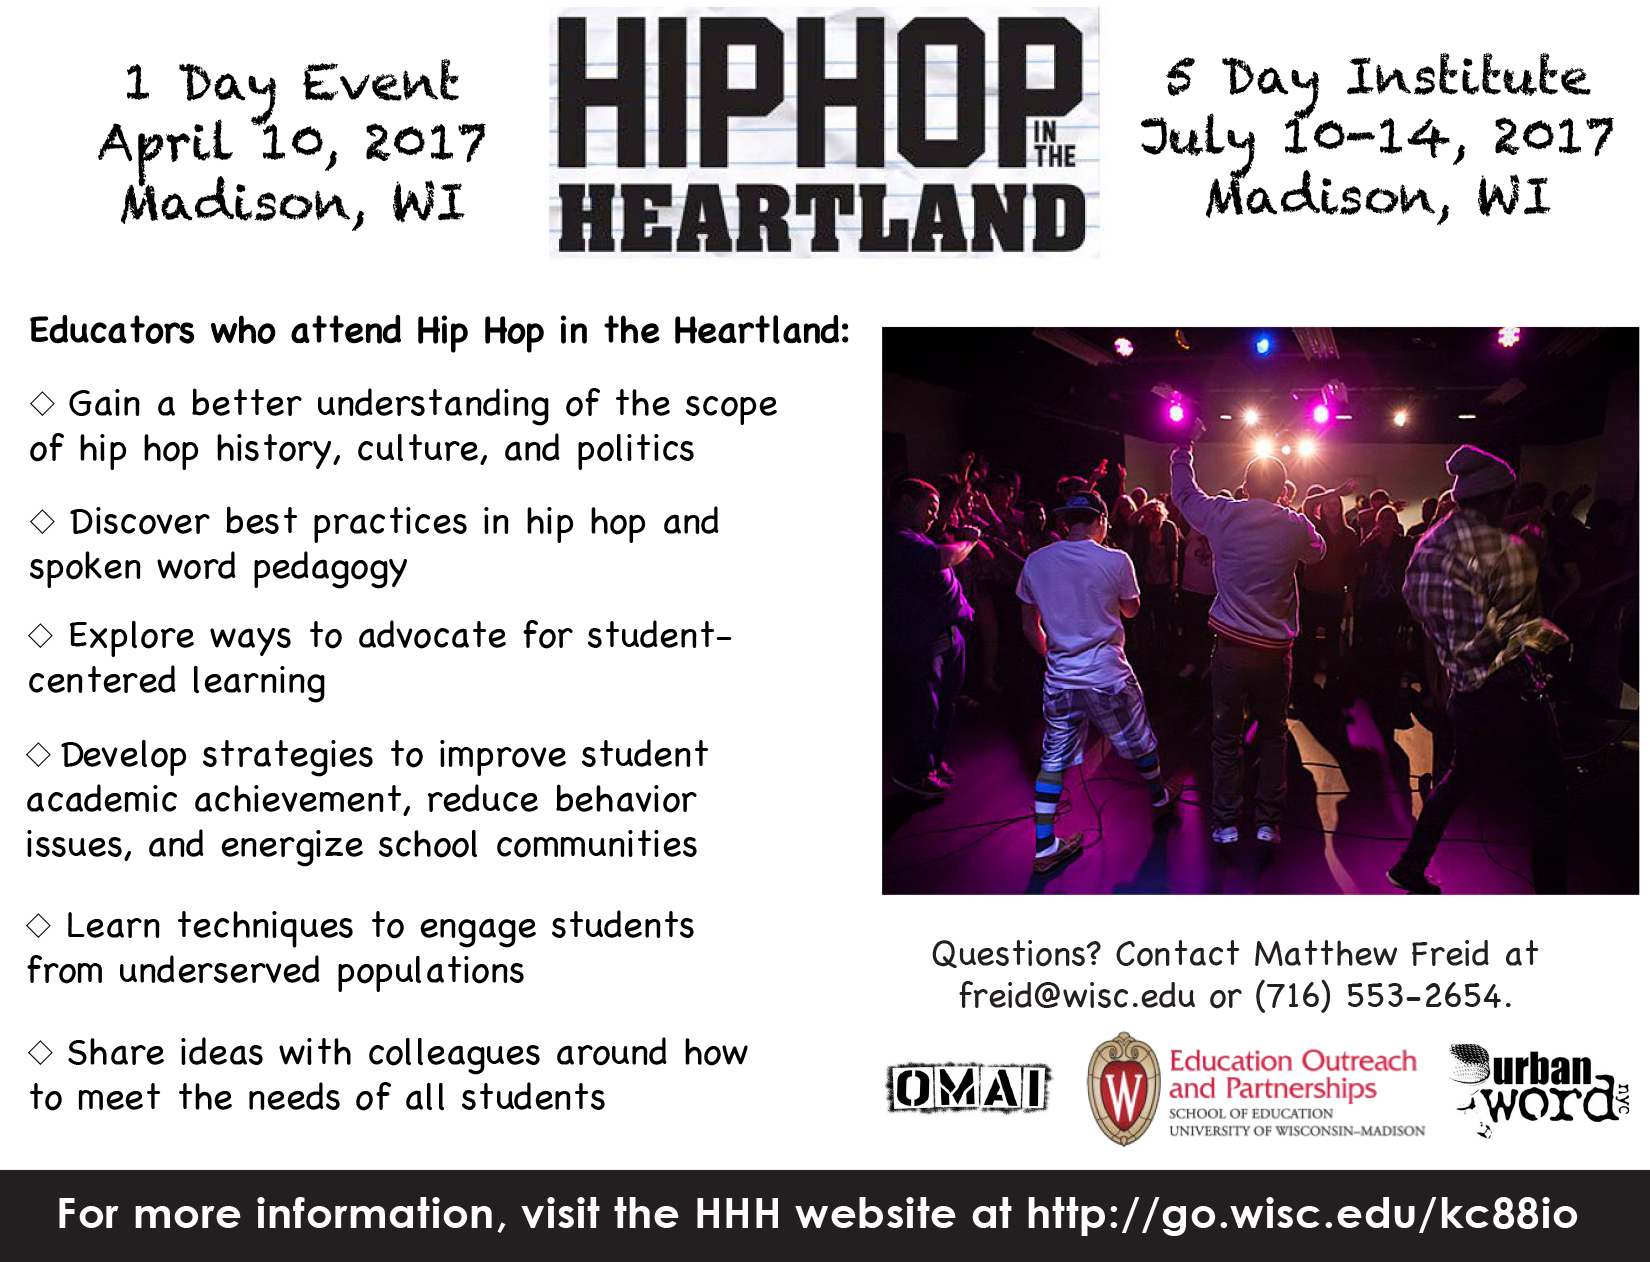 Hip Hop in the Heartland Spring 2017 Promotional Material